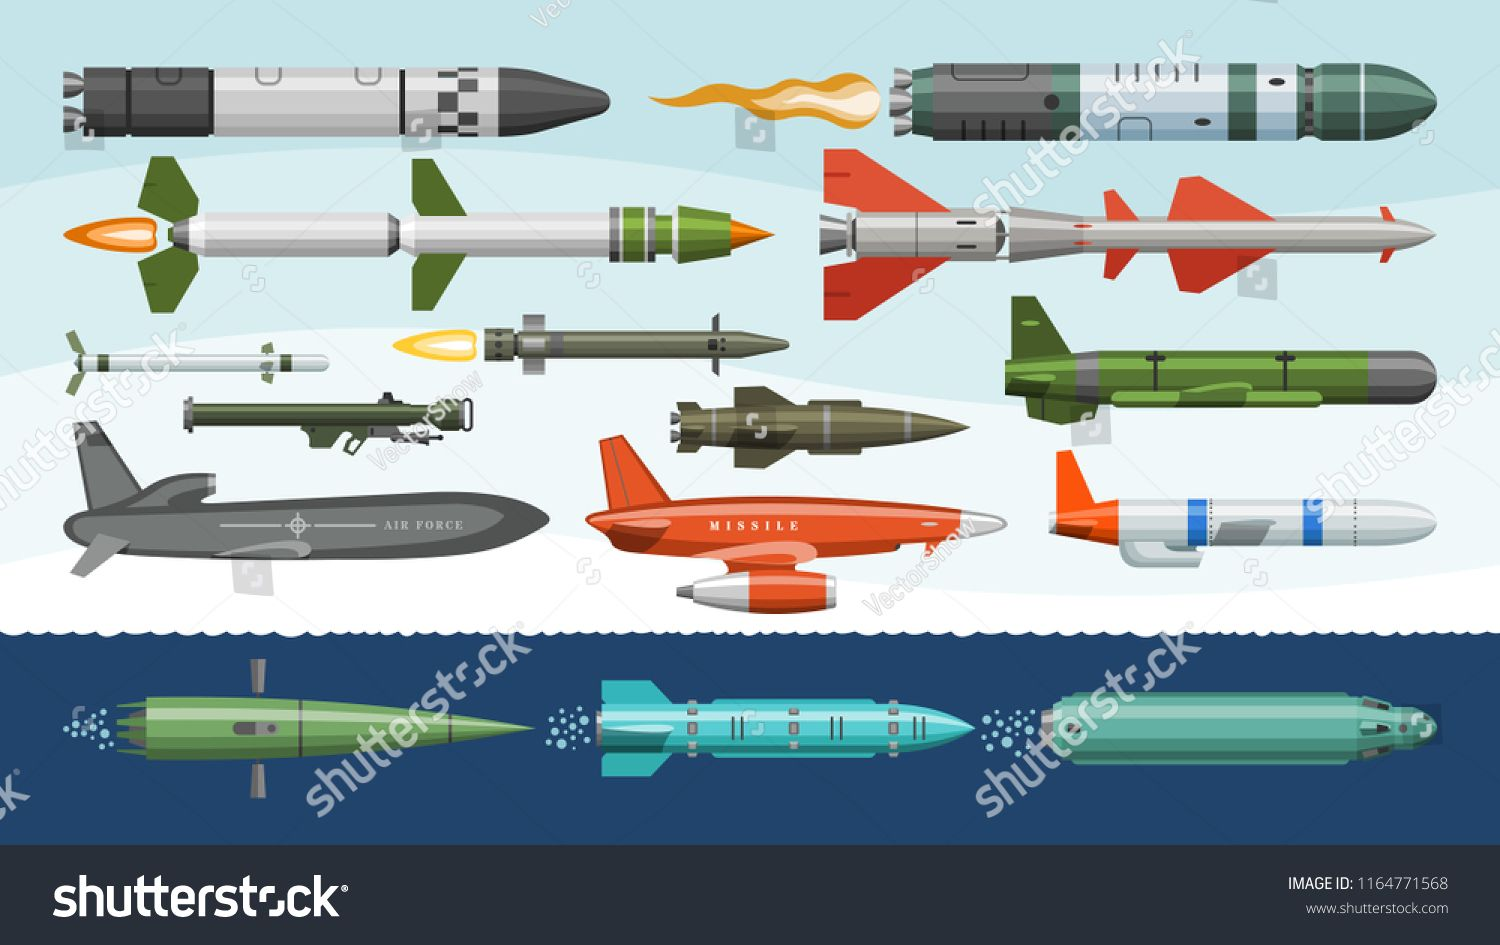 Missile vector military missilery rocket weapon and ballistic nuclear bomb illustration militarily set of rocketpropelled warhead isolated on background